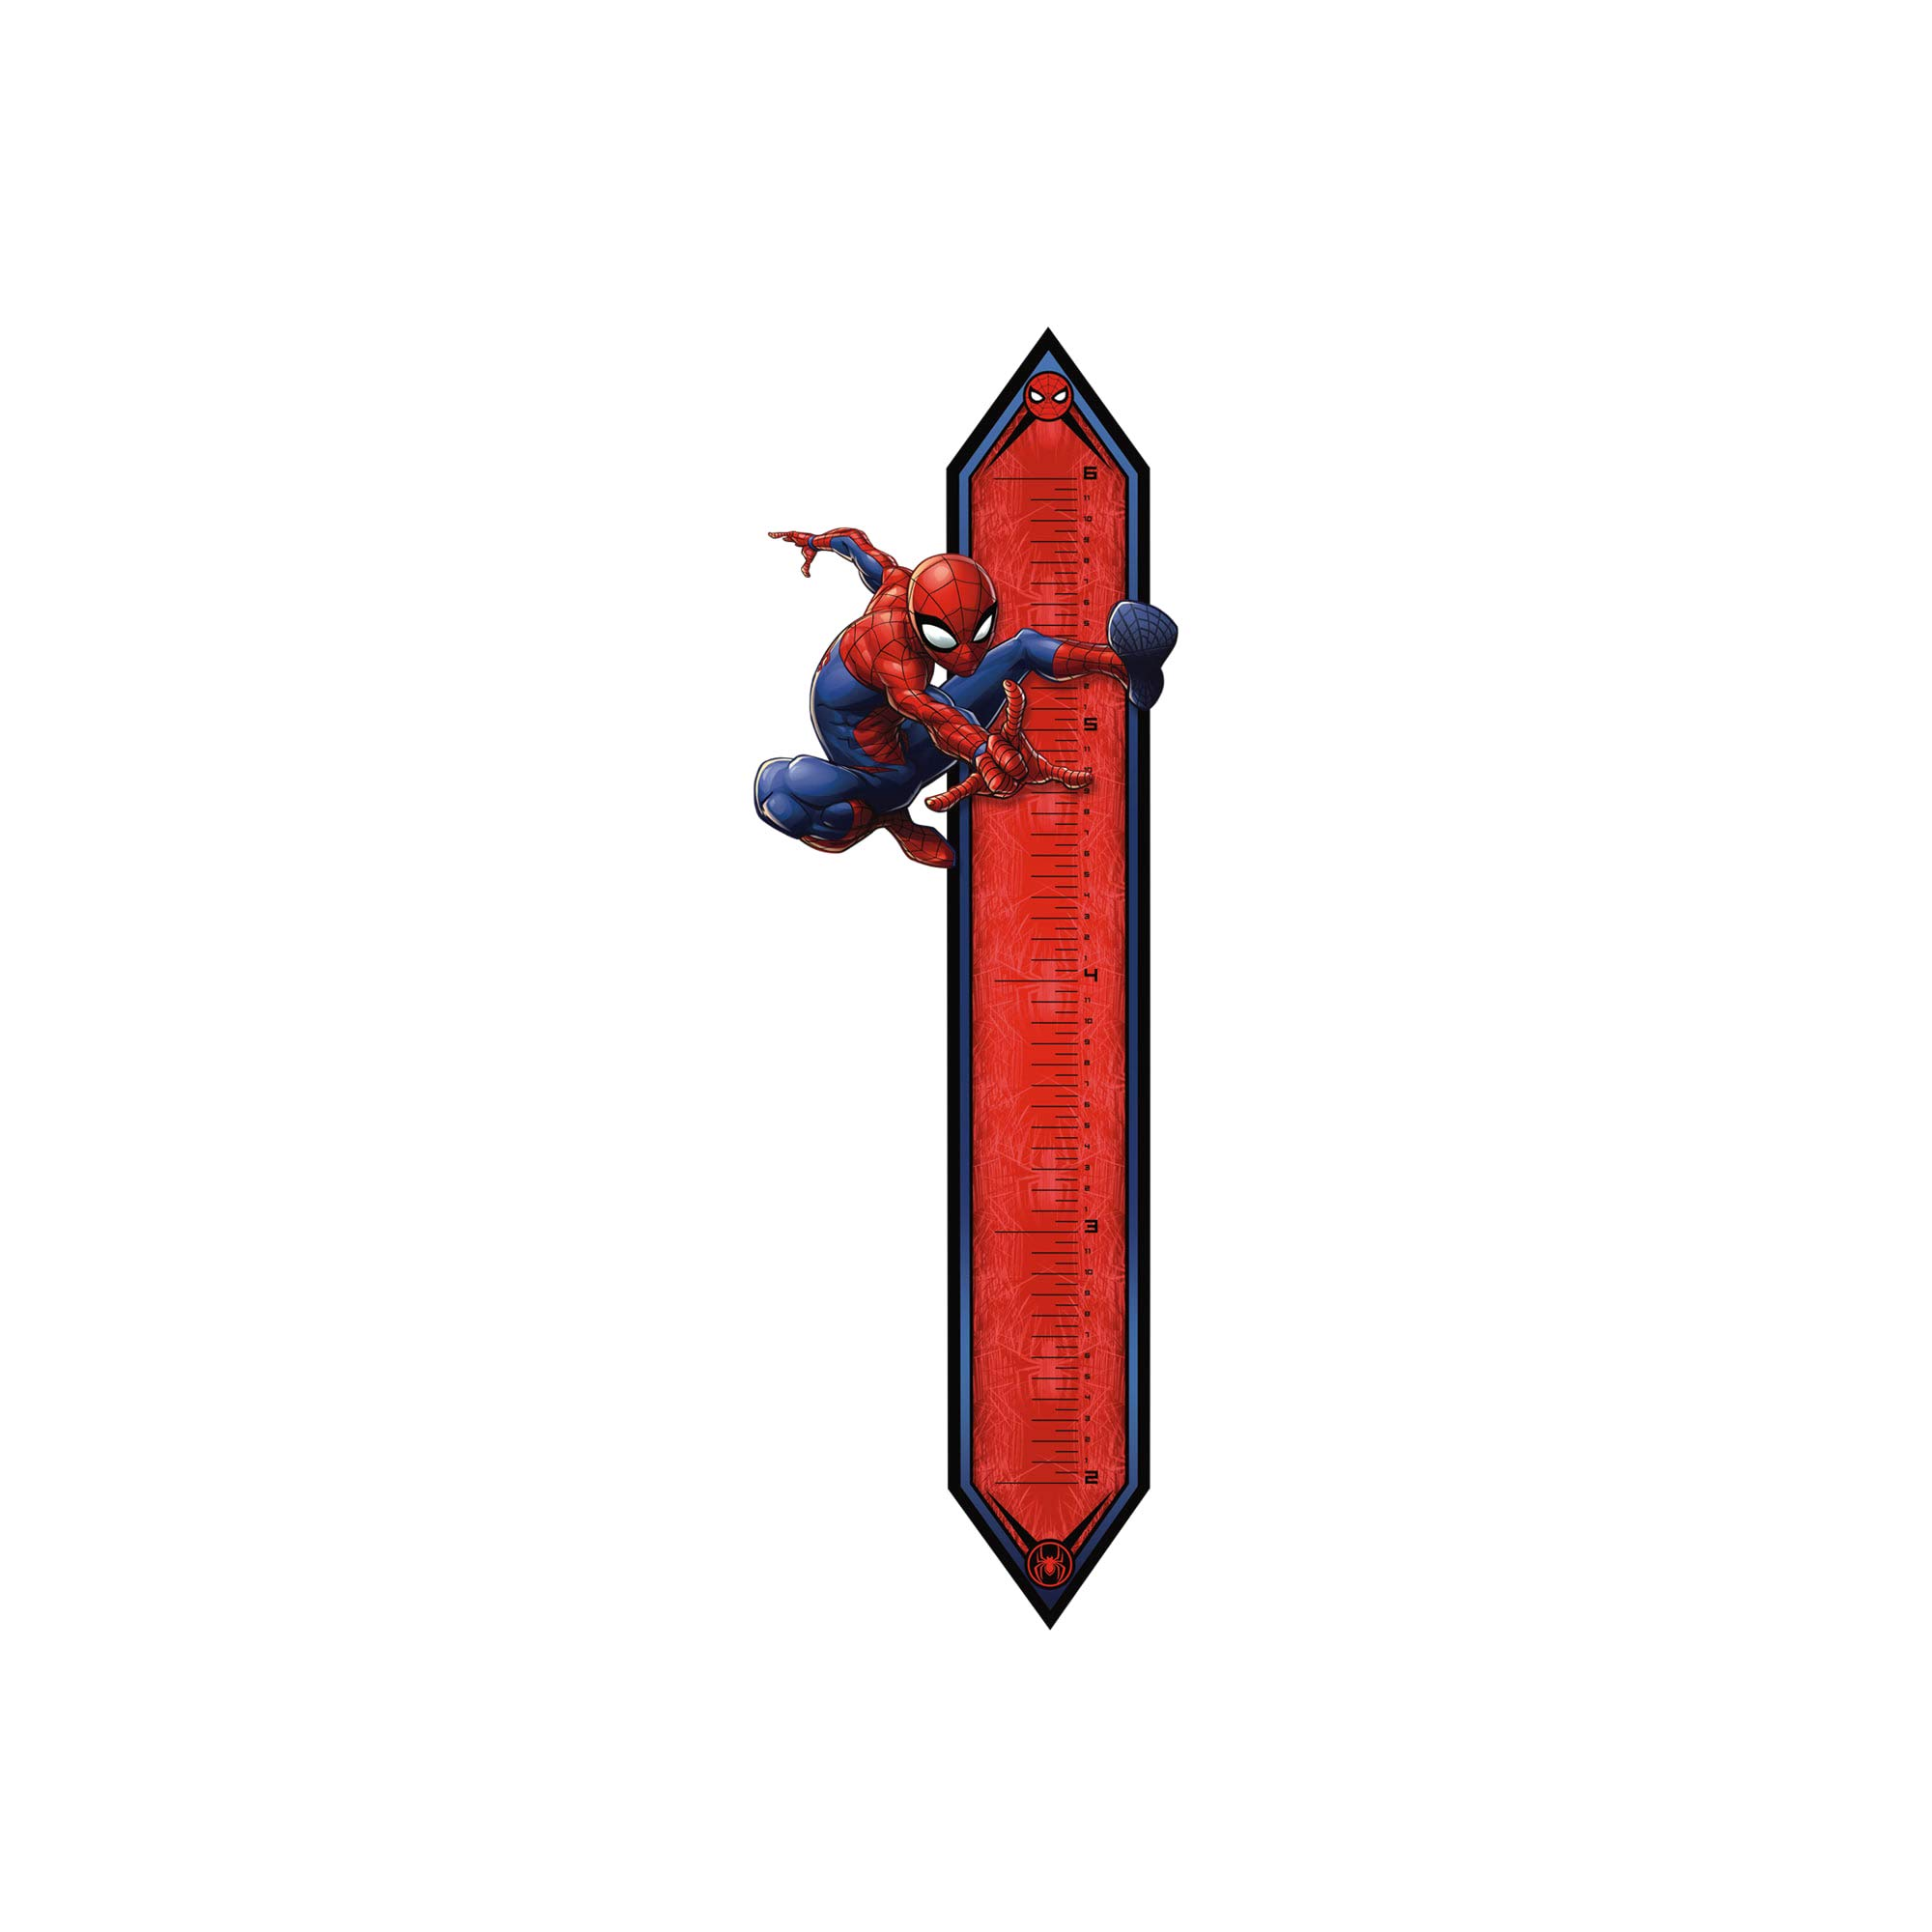 FATHEAD Spider-Man: in Action Growth Chart-Giant Officially Licensed Marvel Wall Decal by FATHEAD